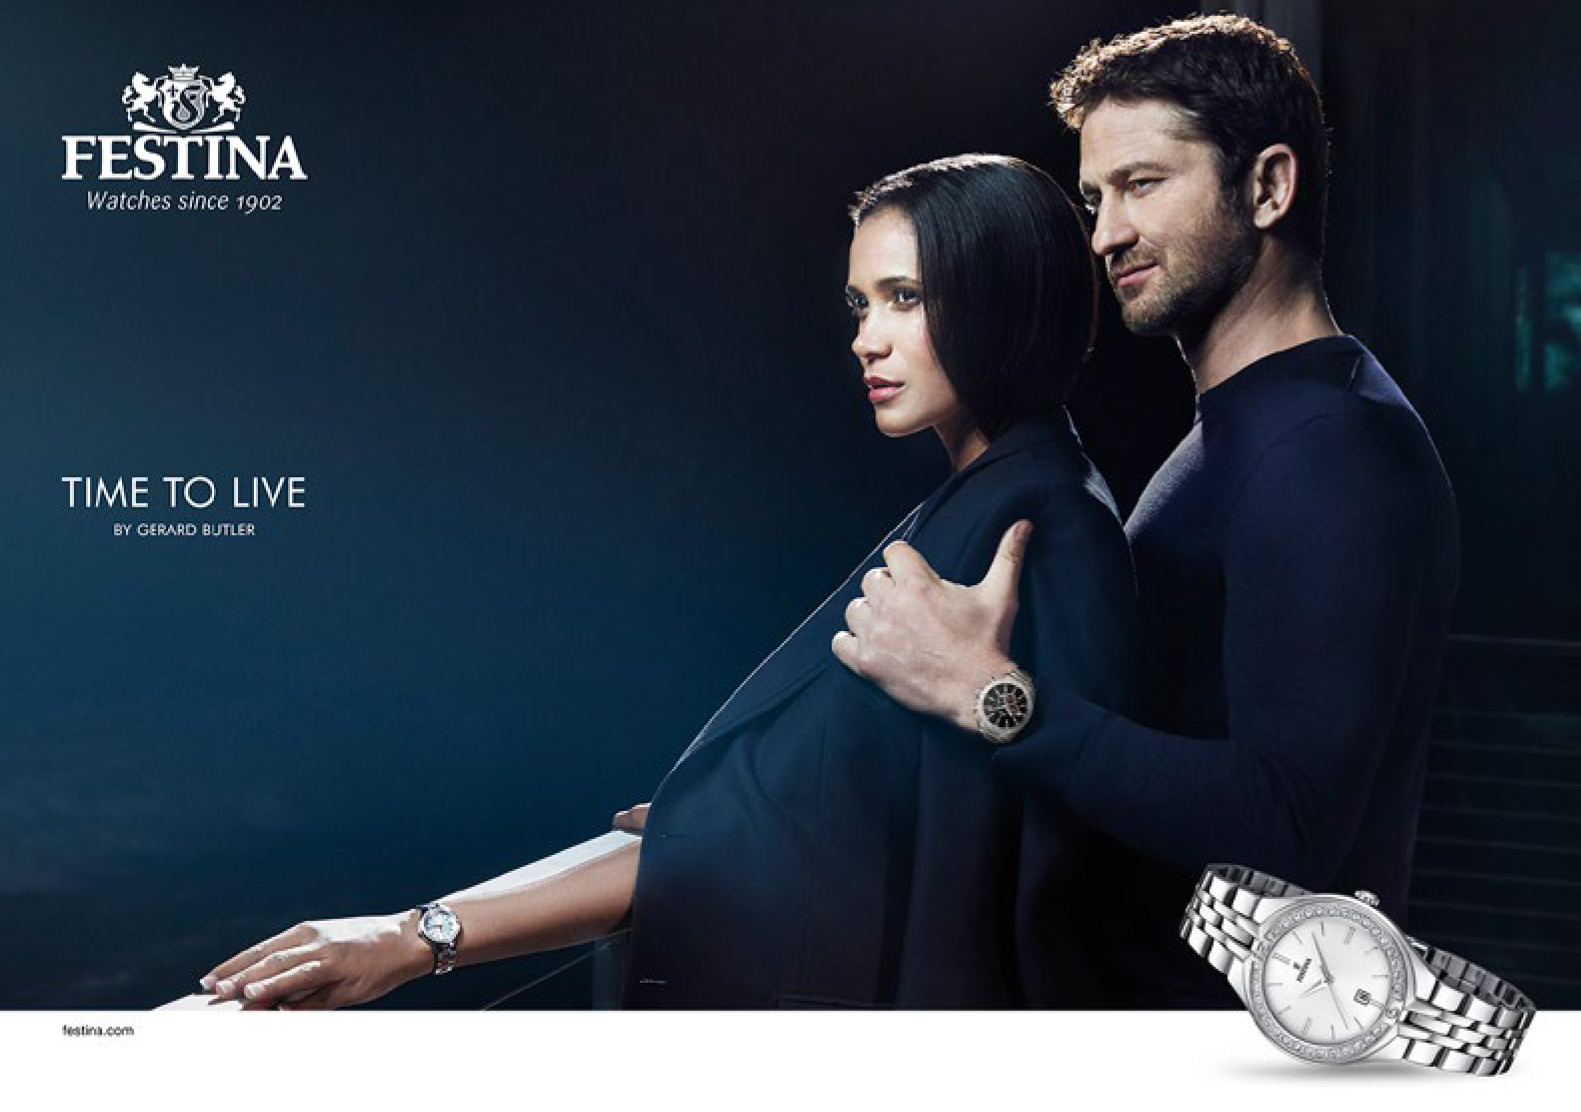 FESTINA MARKETING top